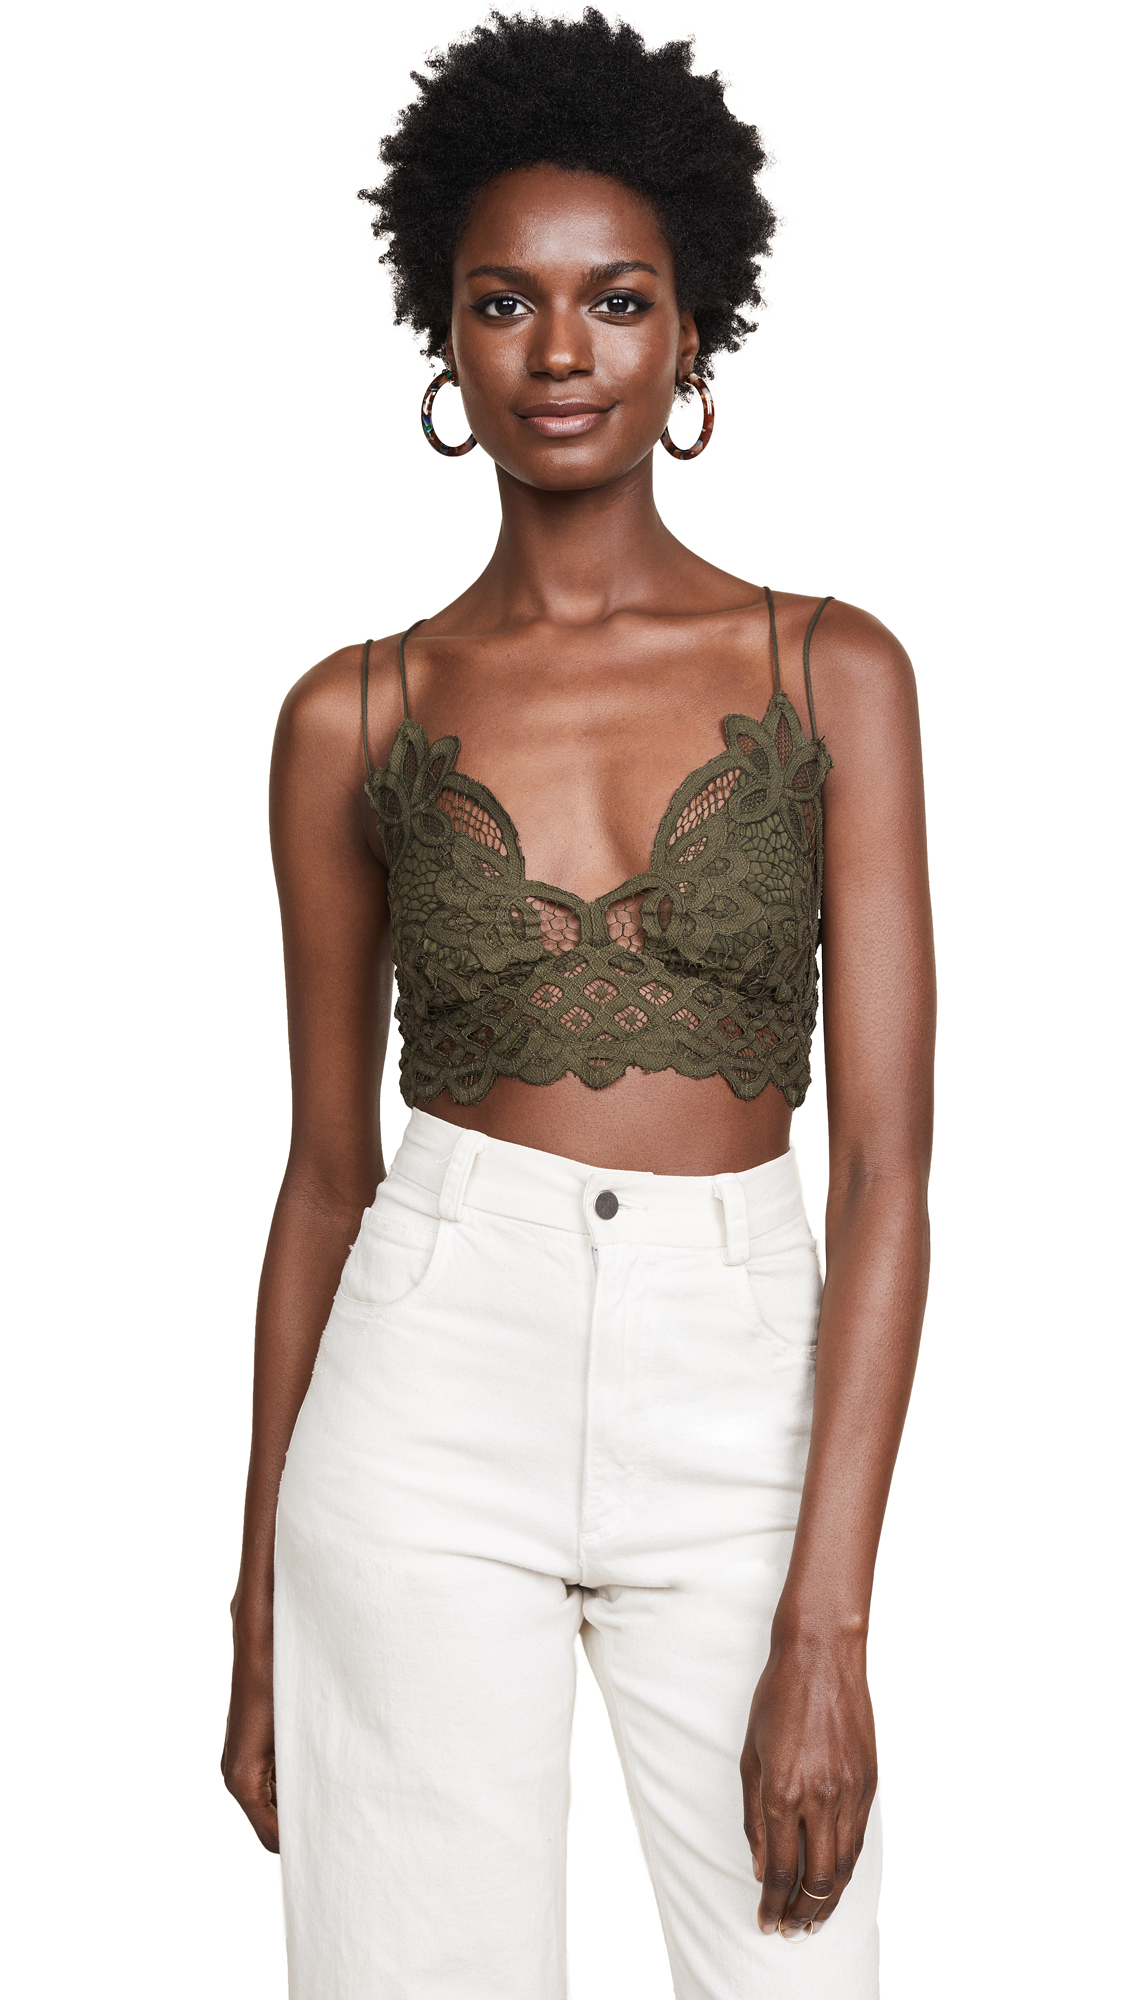 db82124af1 Free People Adella Bralette In Olive